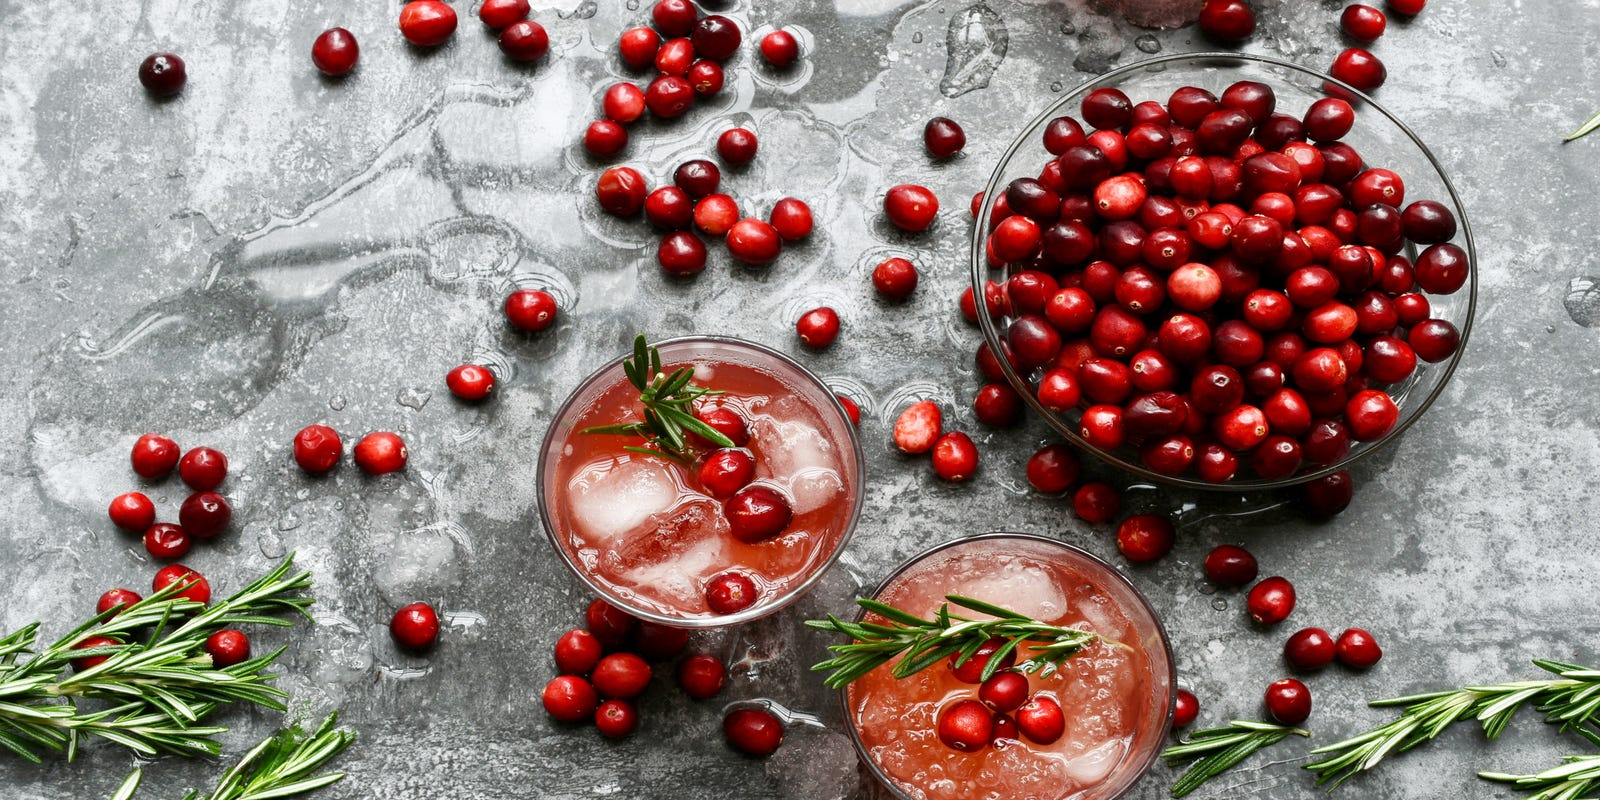 Check Out The Benefits Of Cranberries